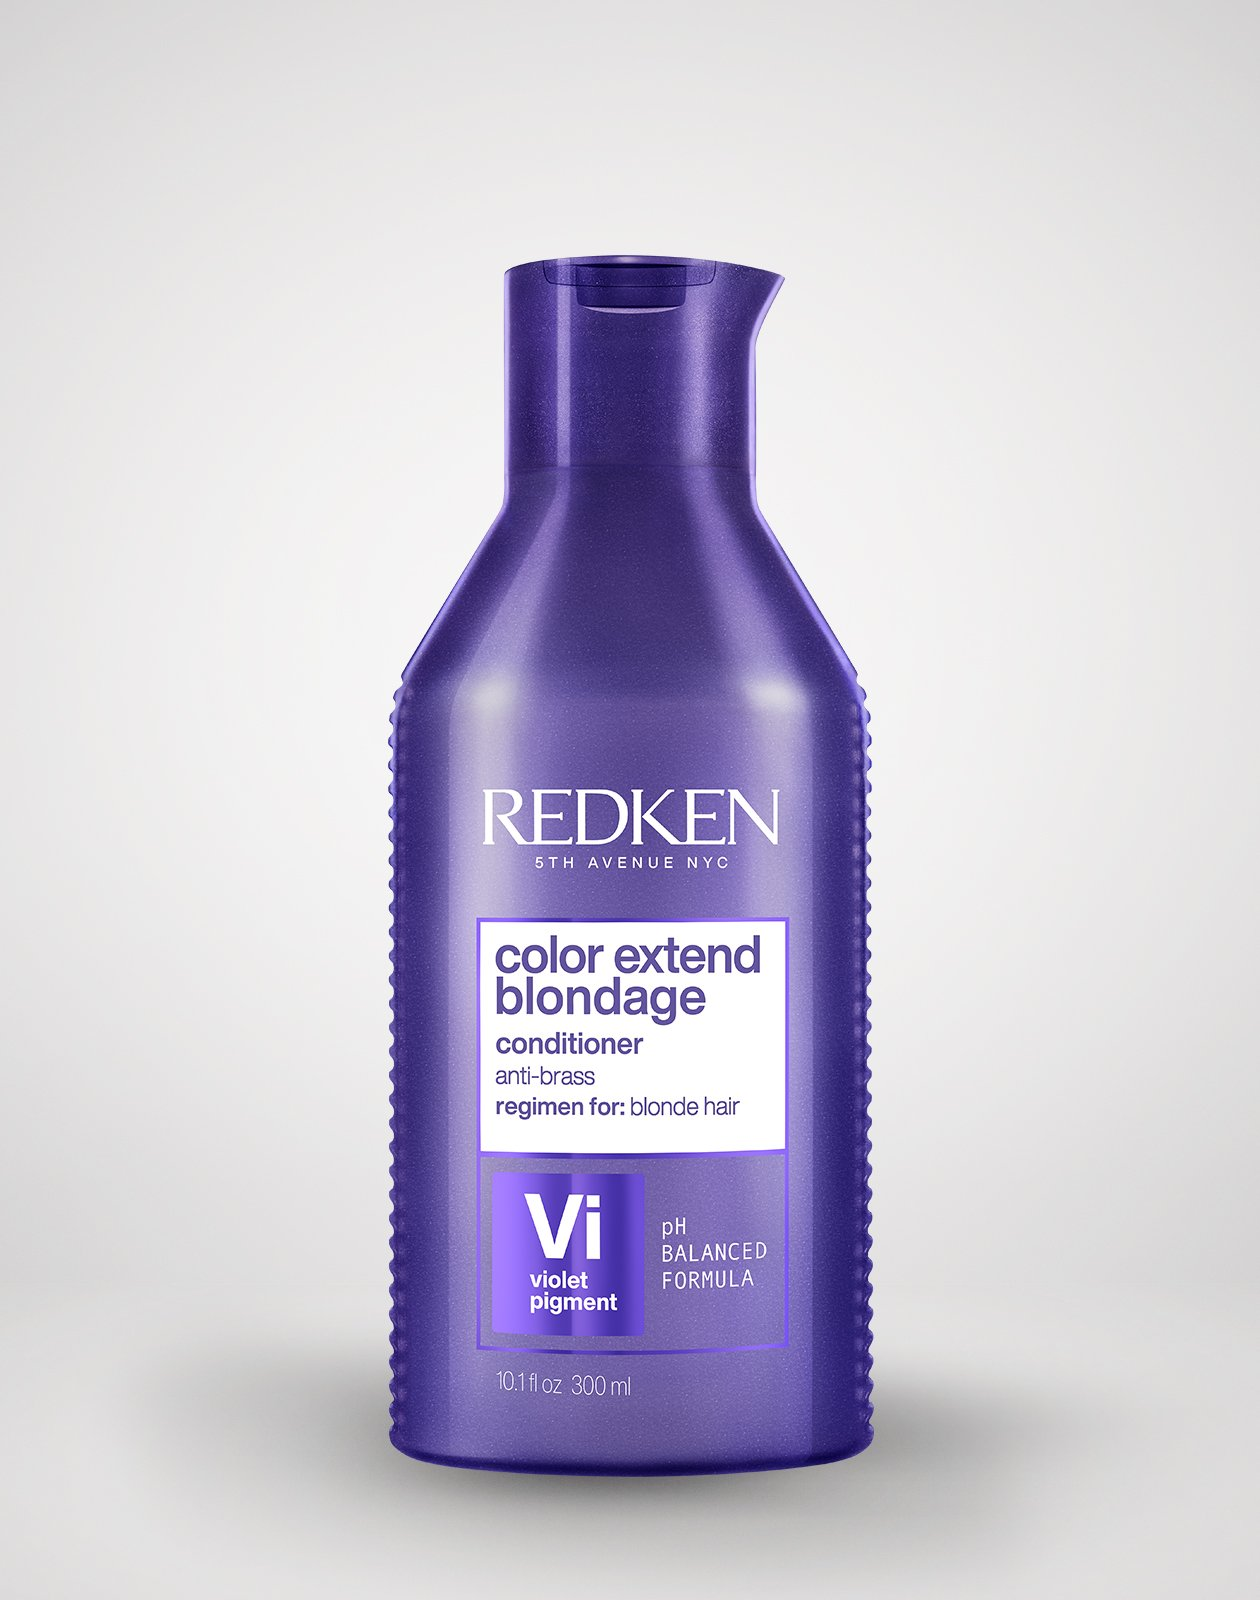 Redken color extend blondage conditioner for blonde hair